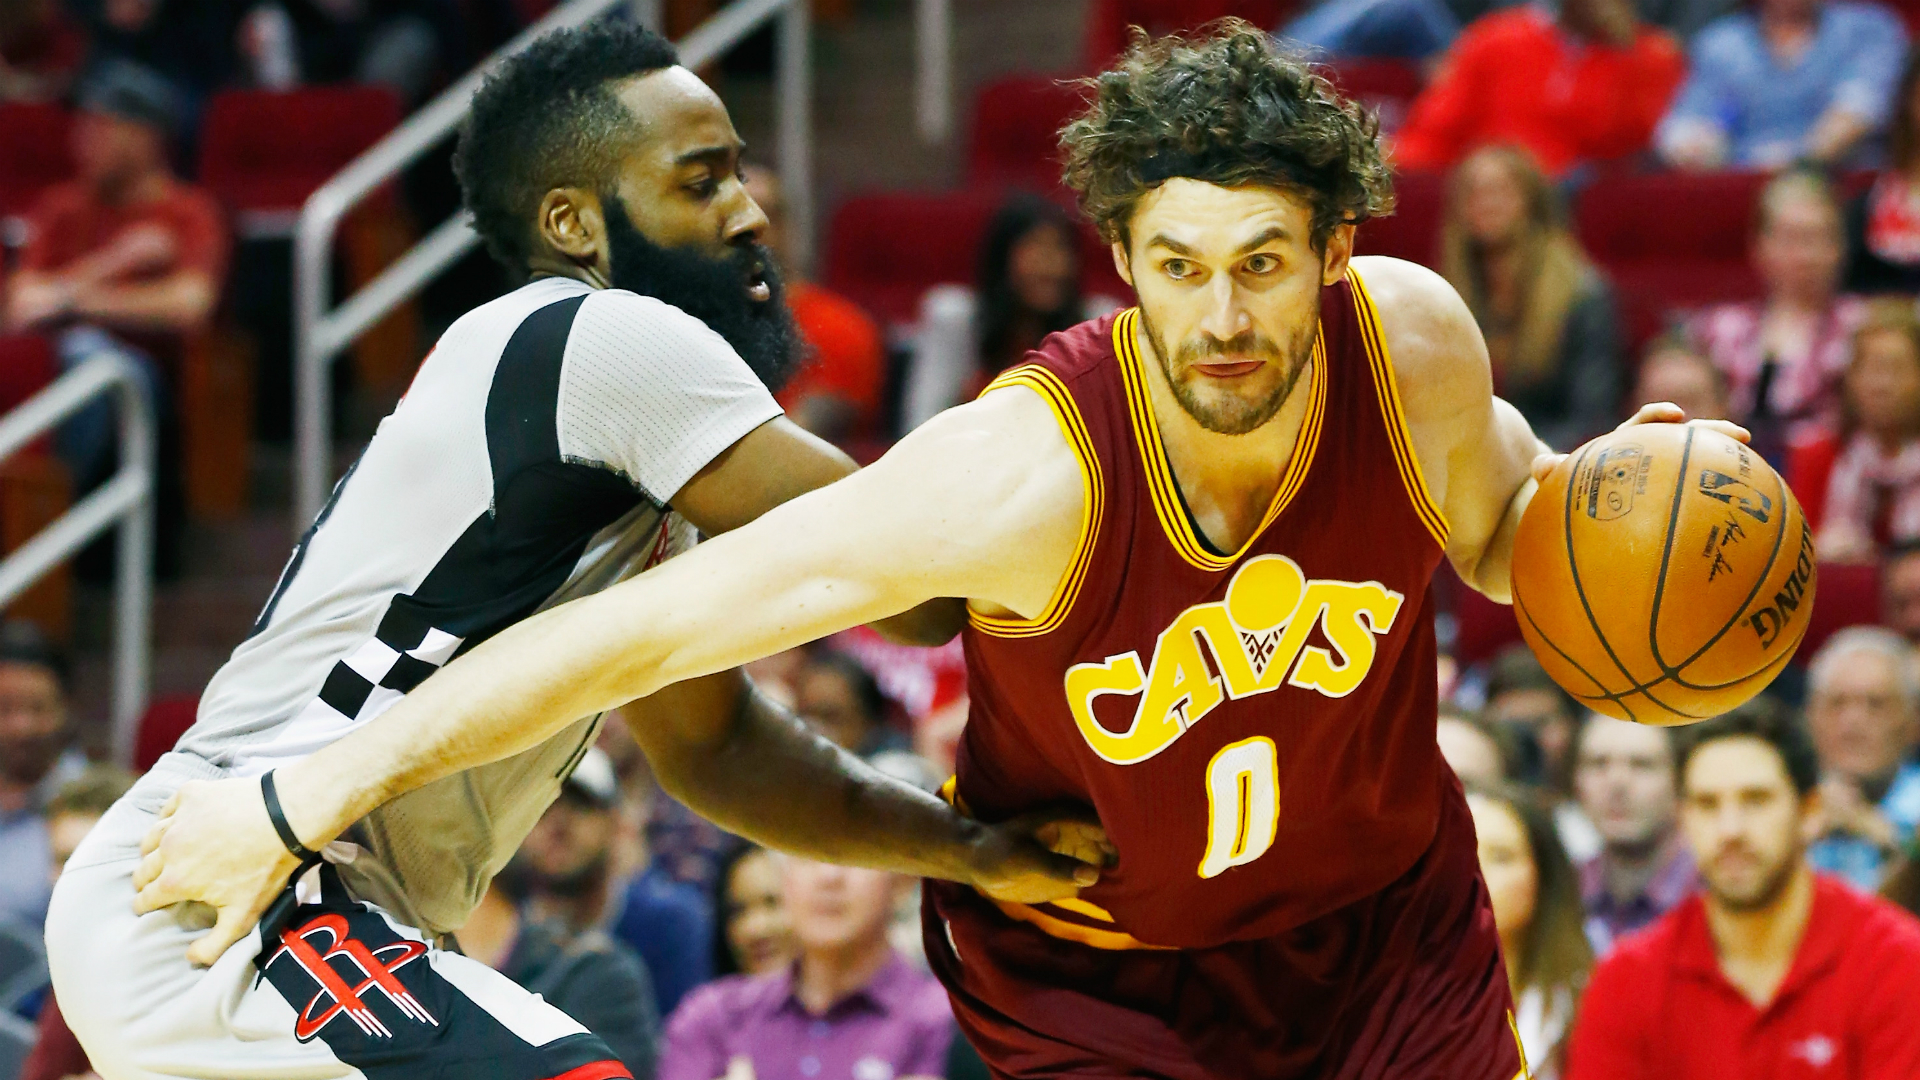 Cavs request time change to avoid conflict with World Series